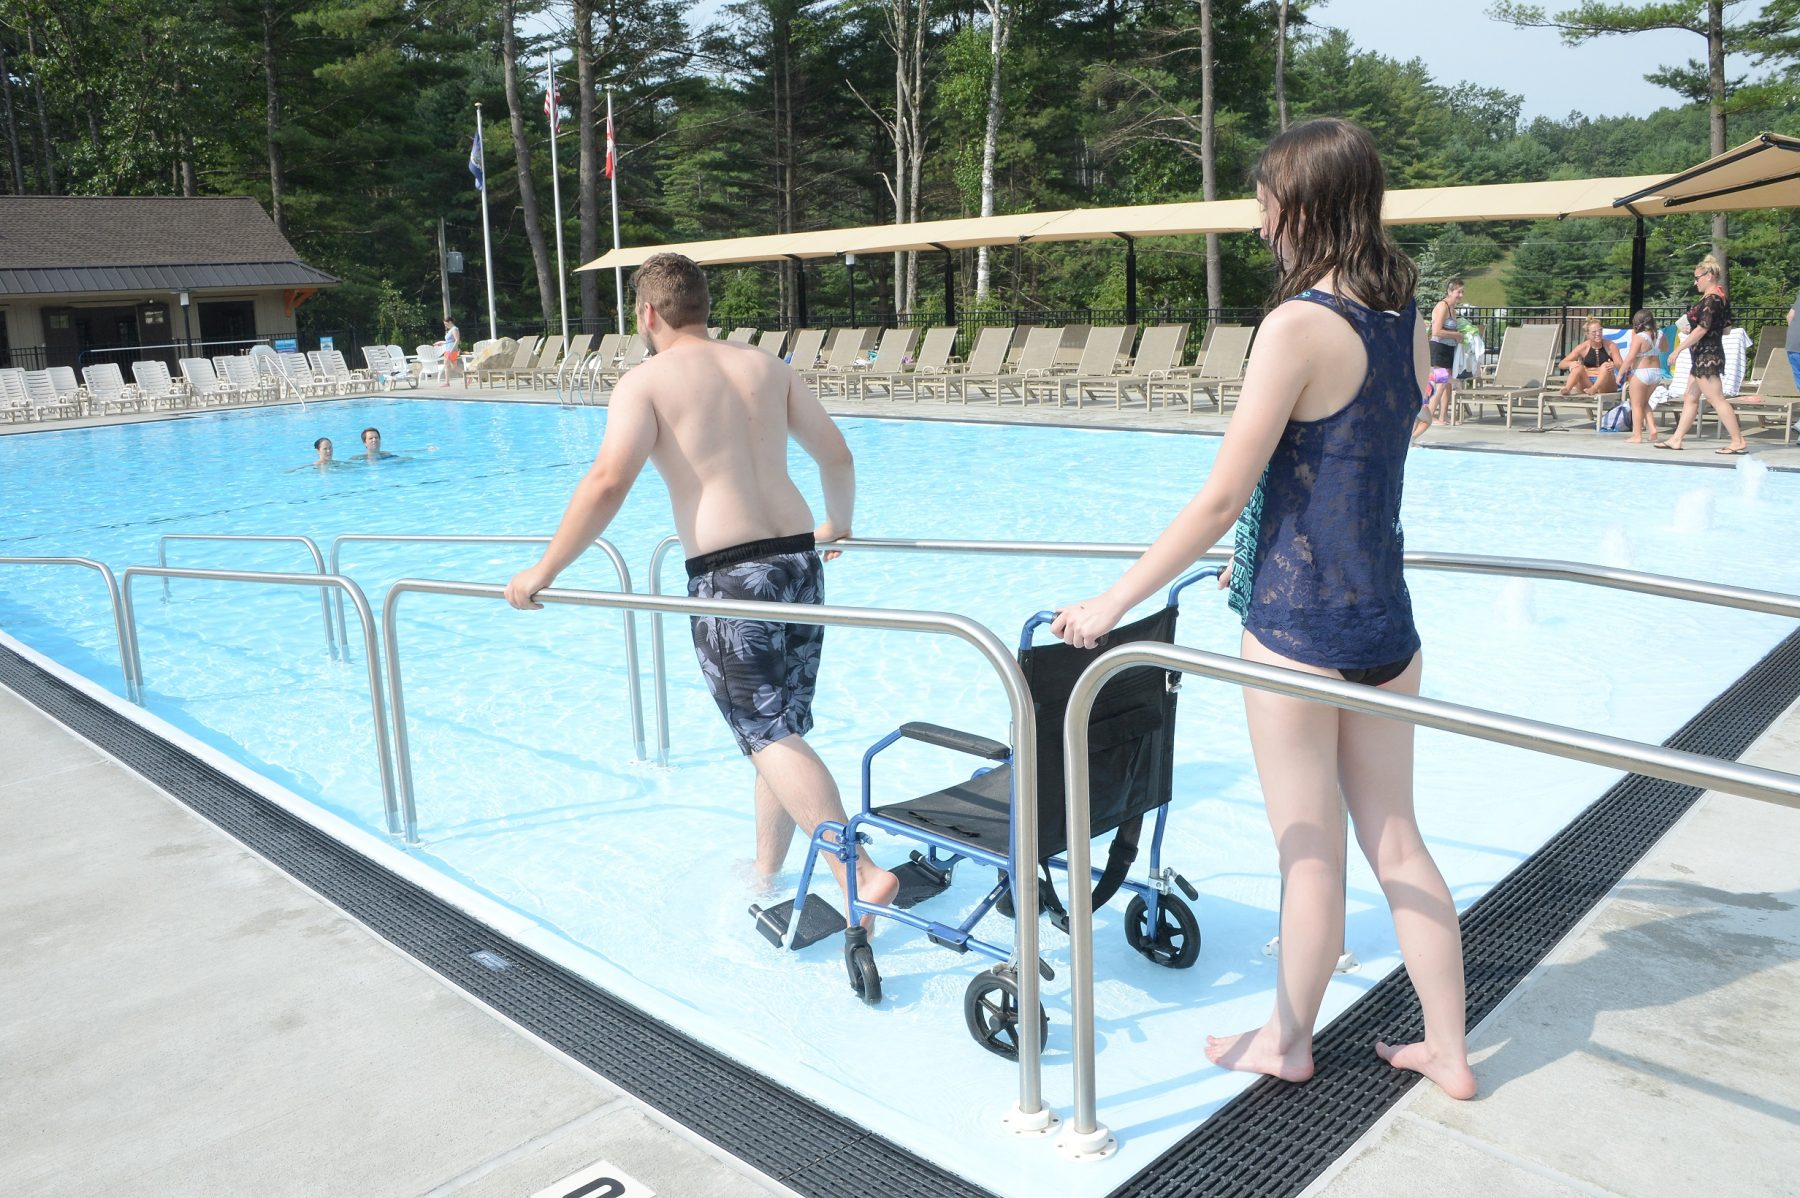 In the foreground of the photo there is a man entering the pool using the ramp. A young woman is following behind him pushing a wheel chair down the ramp into the pool. There are other guests shown swimming in the pool. To the right in the back corner of the photo other guests are shown sitting by the pool.